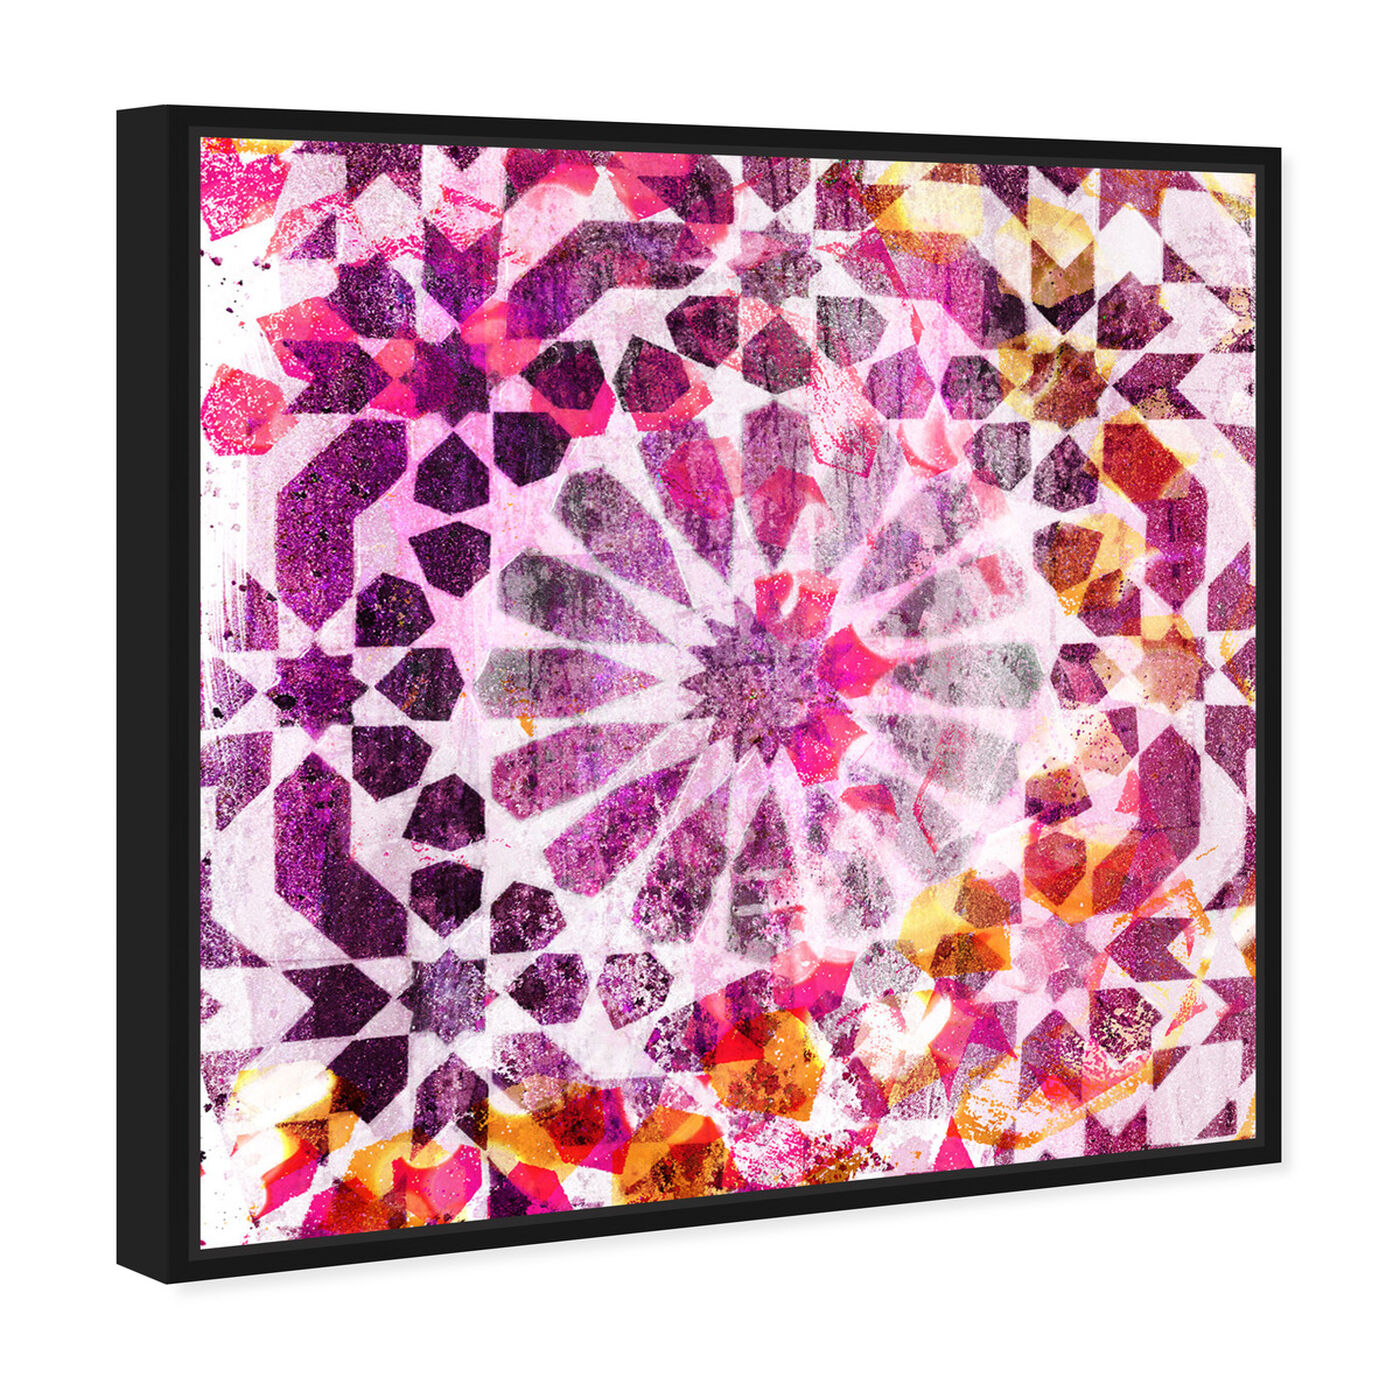 Angled view of Majid Pink featuring abstract and patterns art.